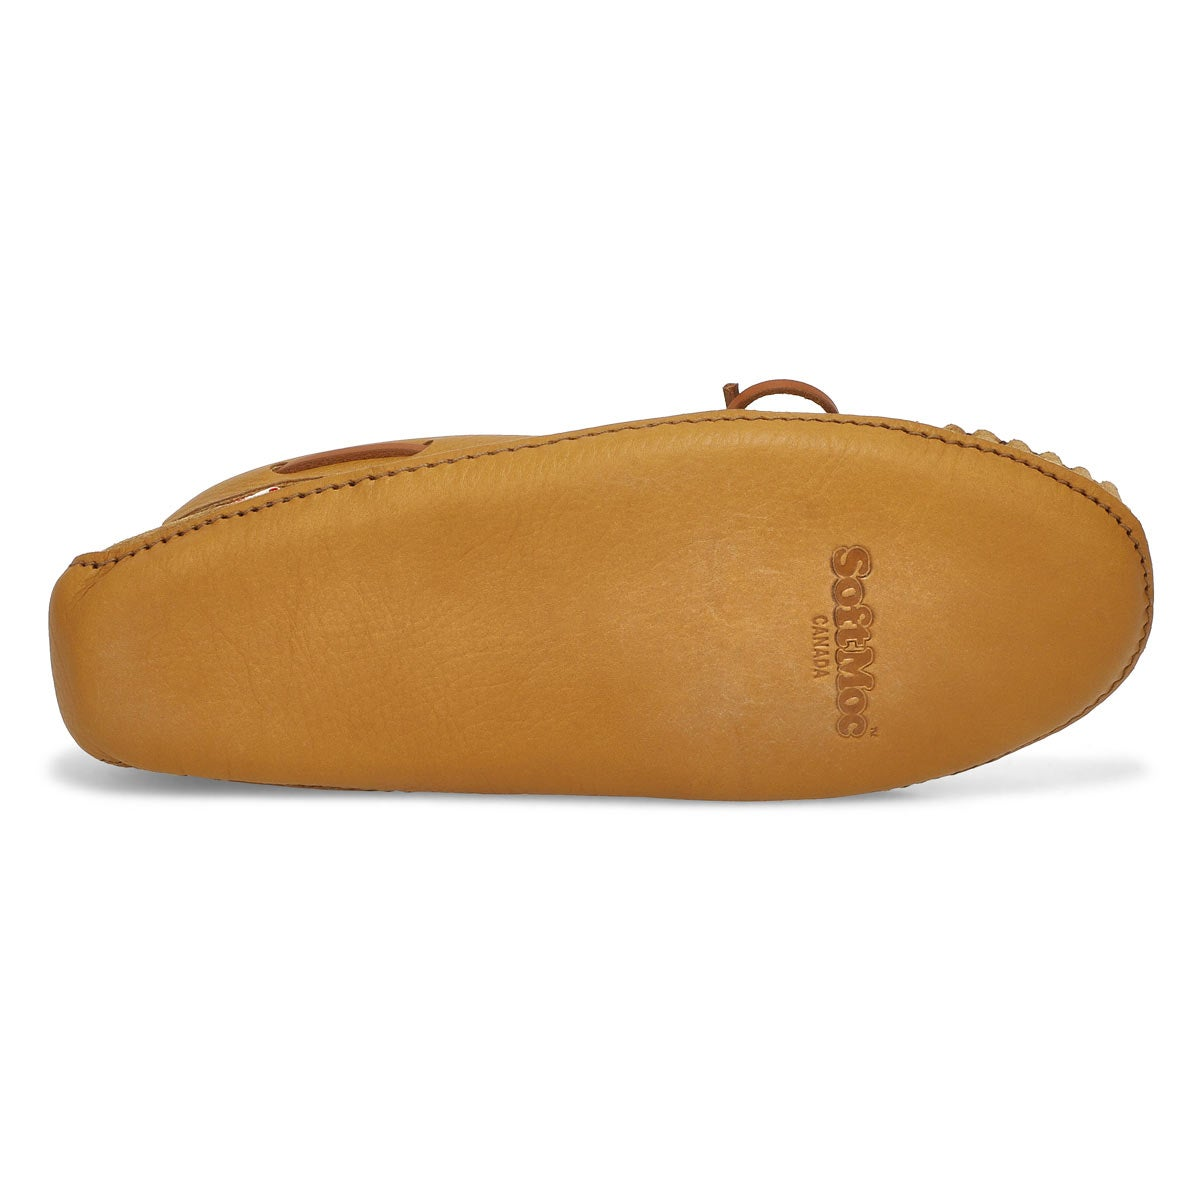 Mocassins mousse visco., havane, hommes